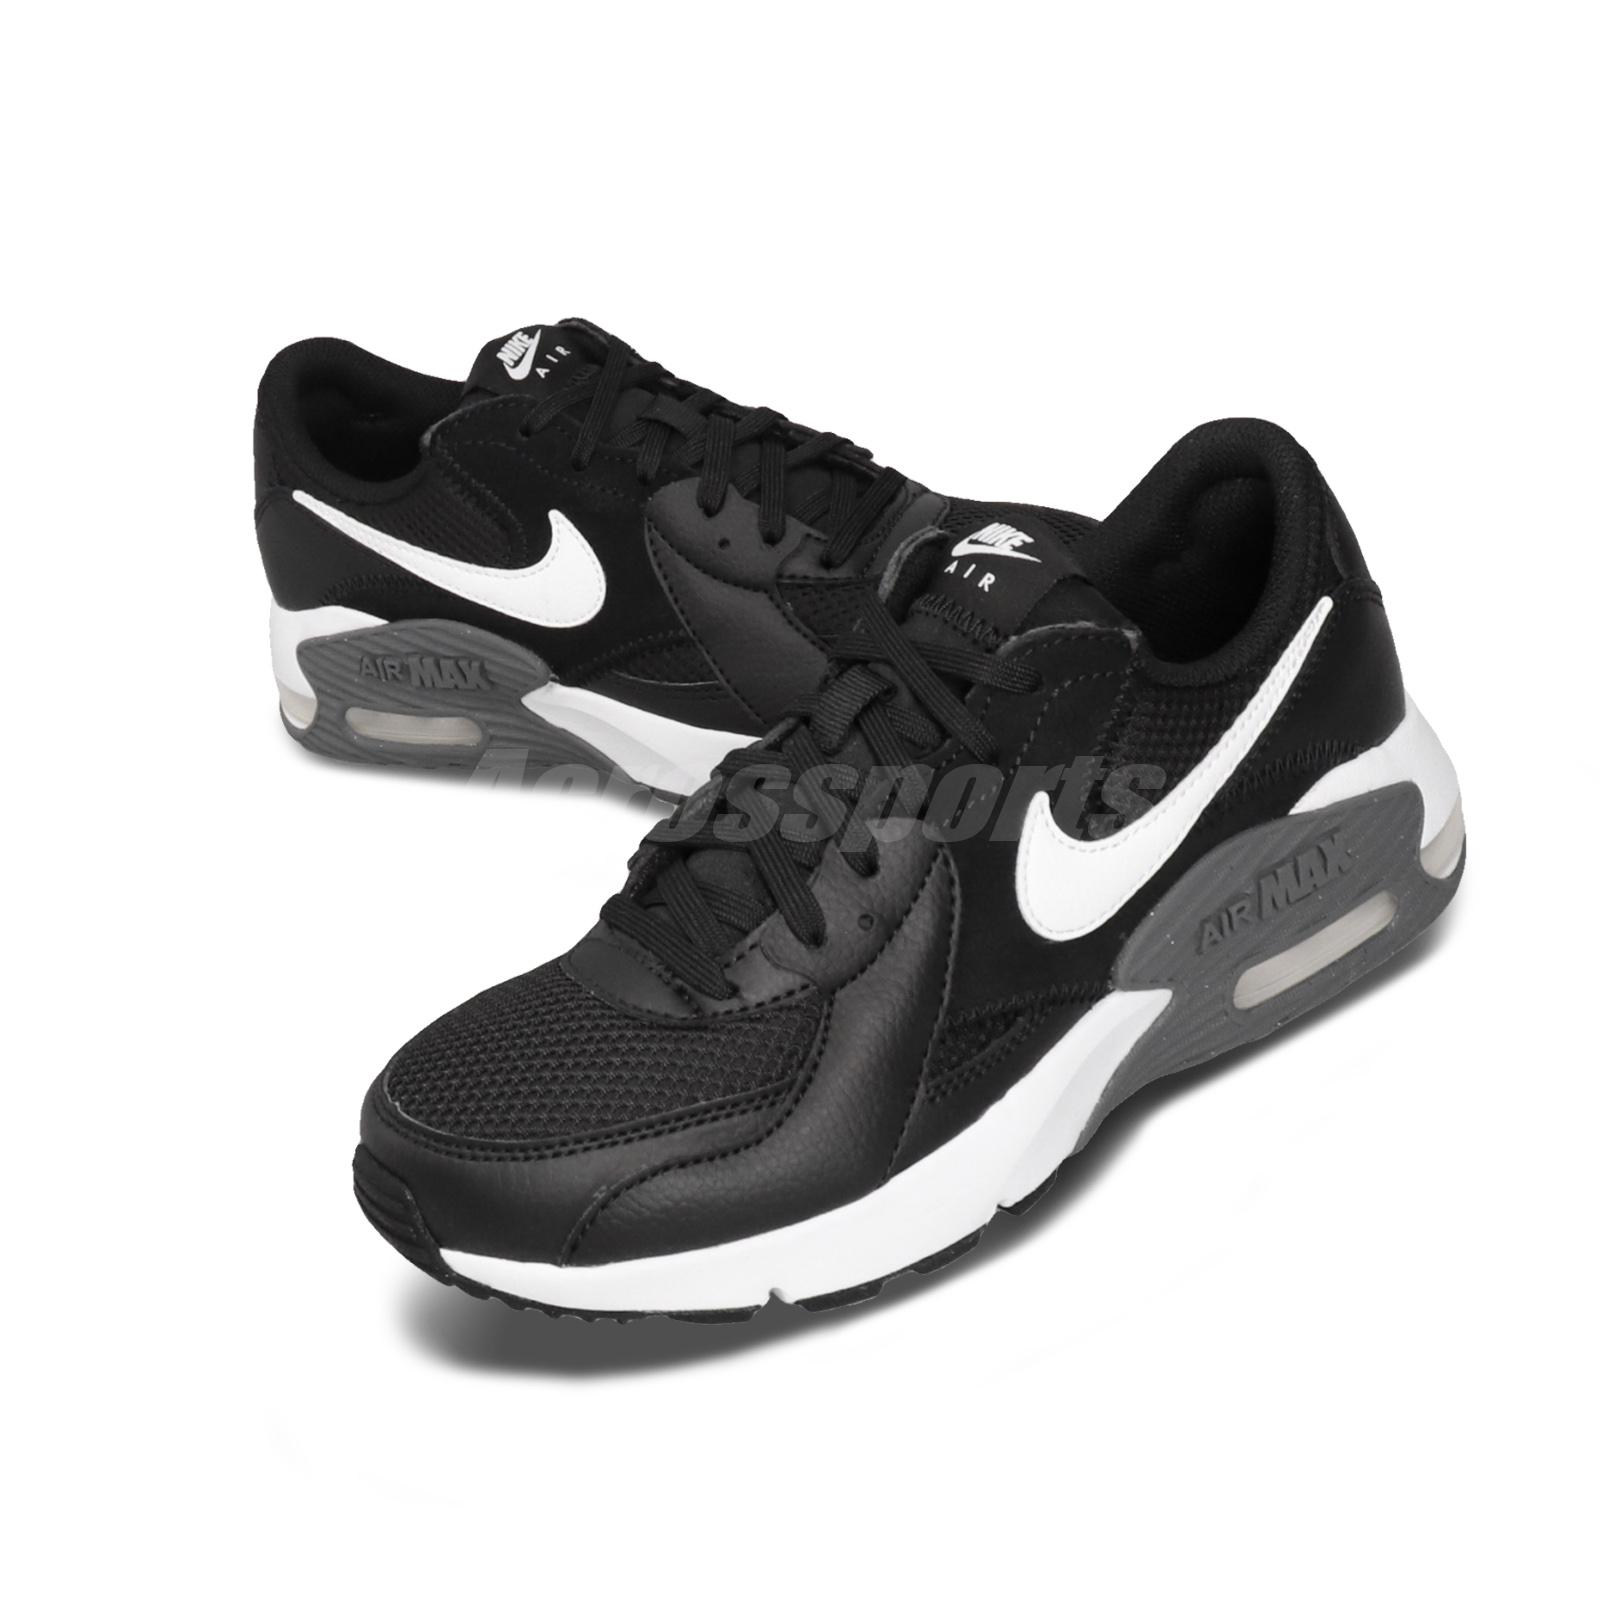 Details about Nike Wmns Air Max Excee Black White Grey Women Casual Shoes  Sneakers CD5432-003